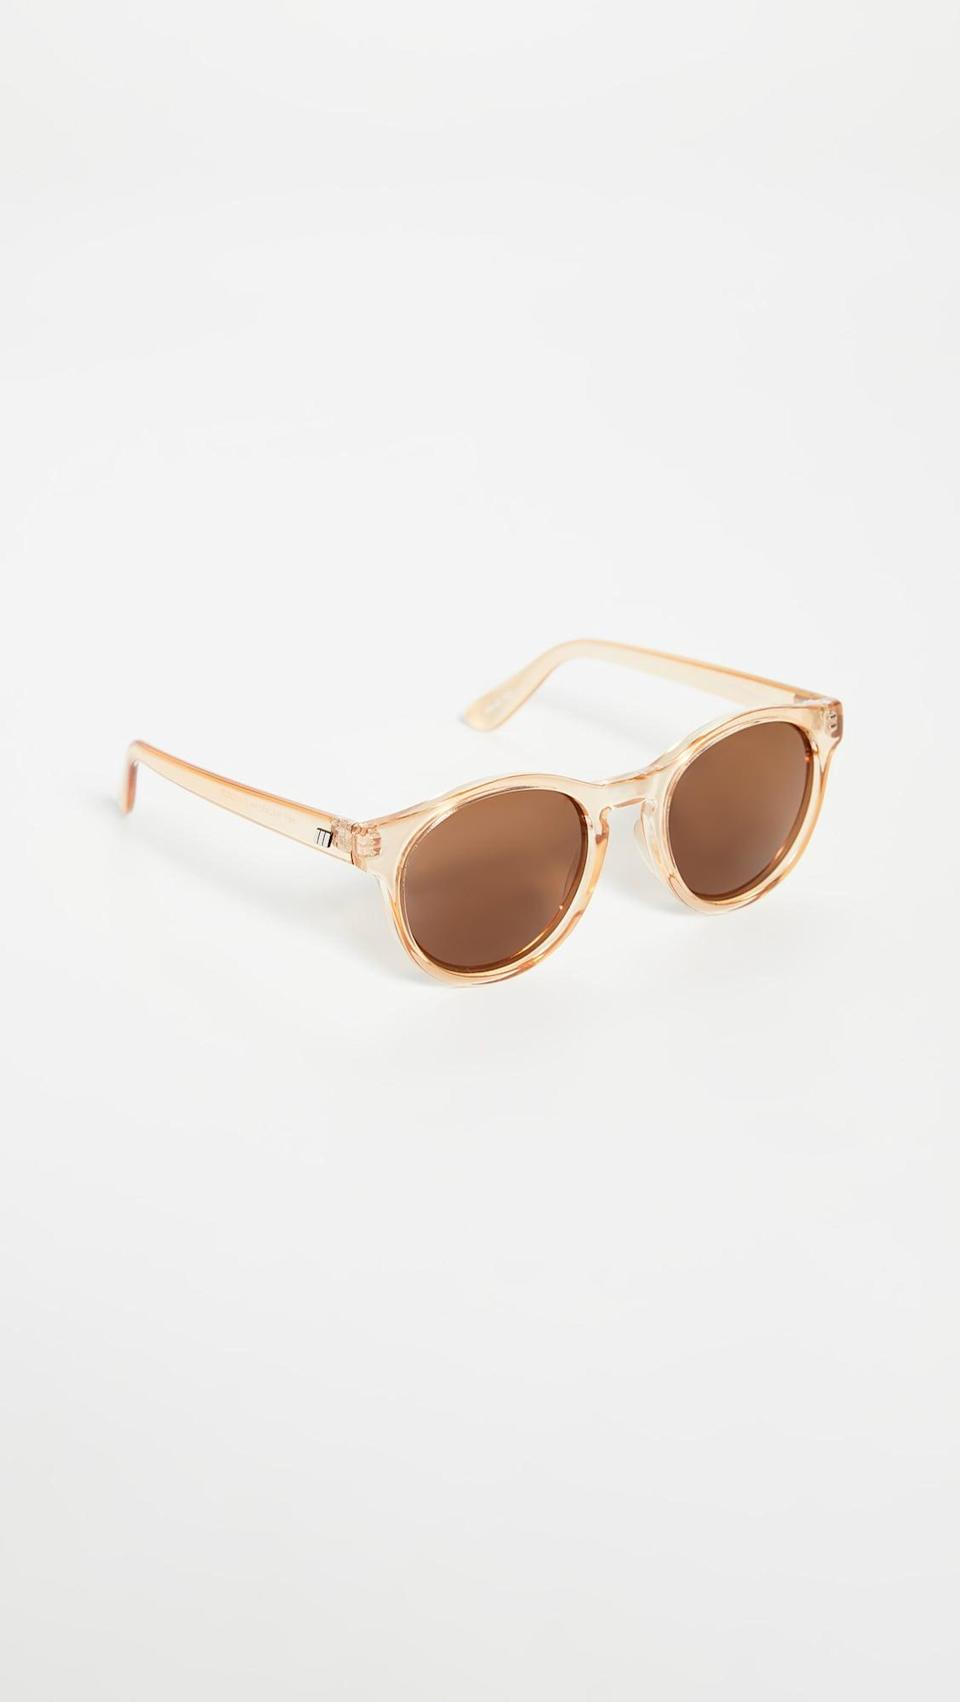 <p>These <span>Le Specs Hey Macarena Polarized Sunglasses</span> ($69) just feel like summer. Normally, you have to pay a premium for polarized sunglasses, but these are under $70 and so cute!</p>